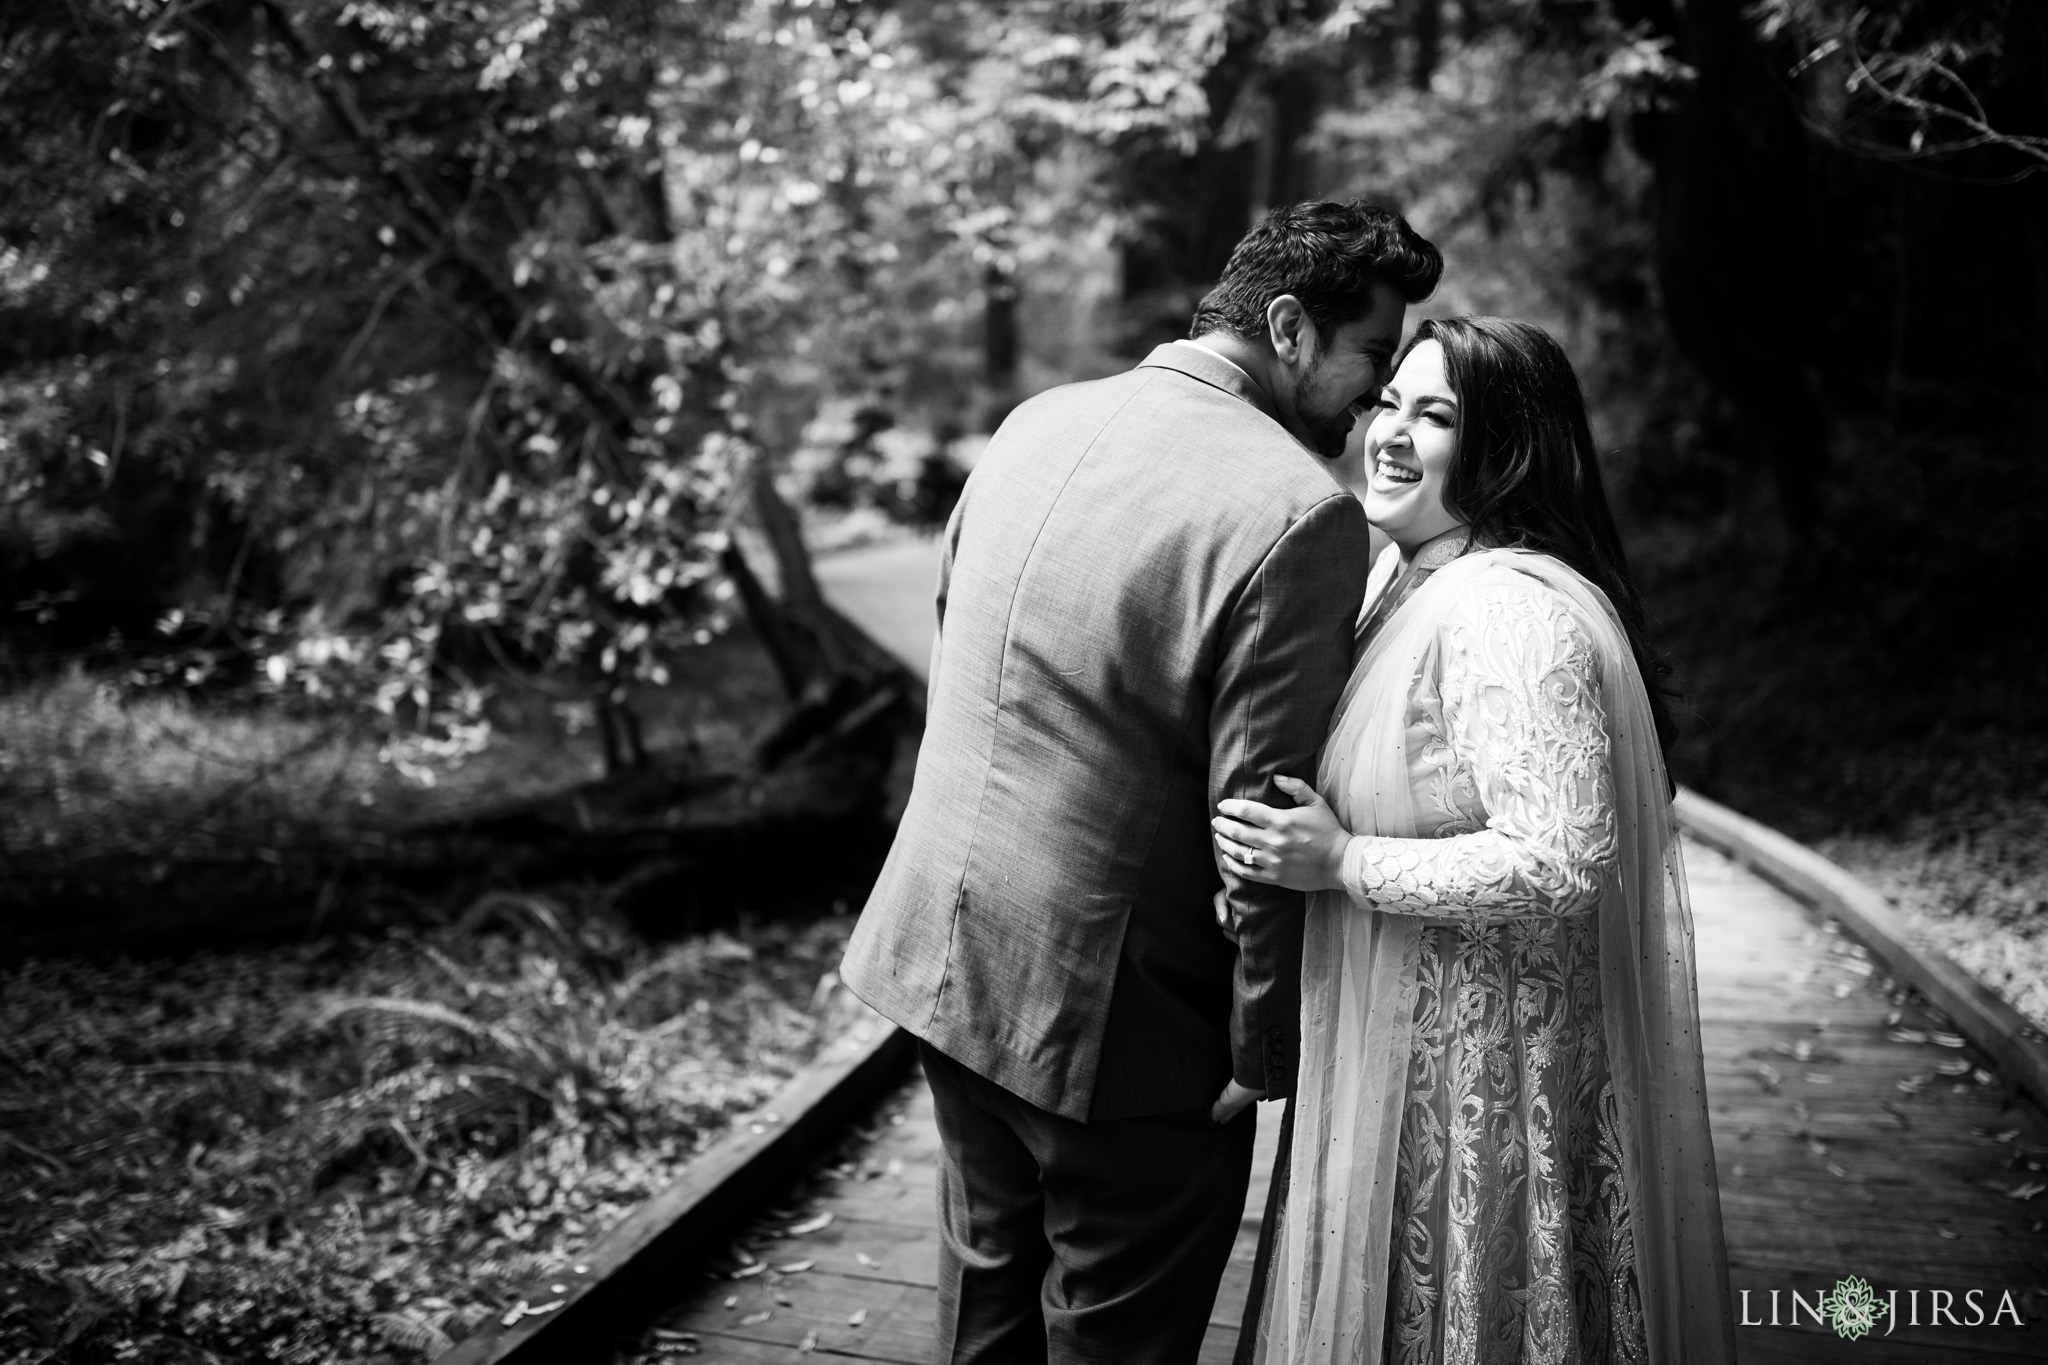 04-San-francisco-muir-woods-marin-county-engagement-photography